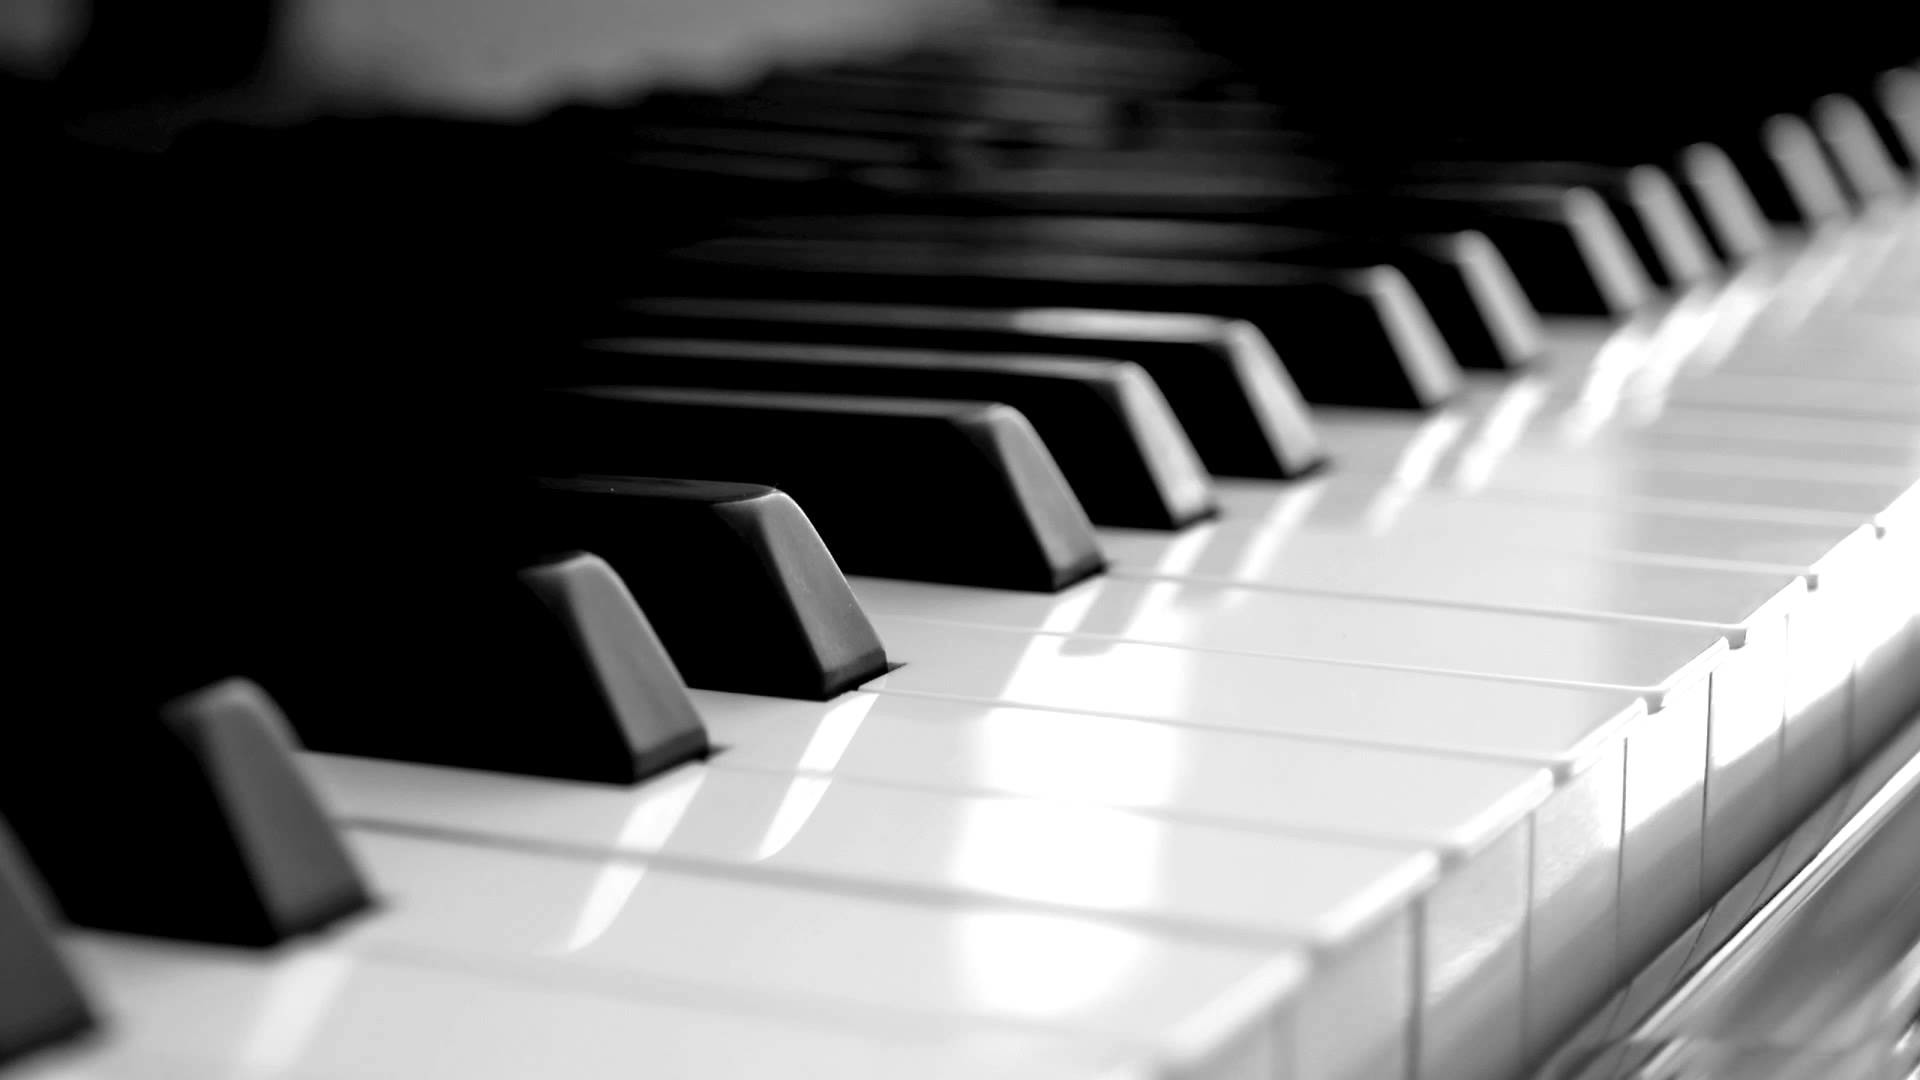 Piano Background Music (57+ pictures)